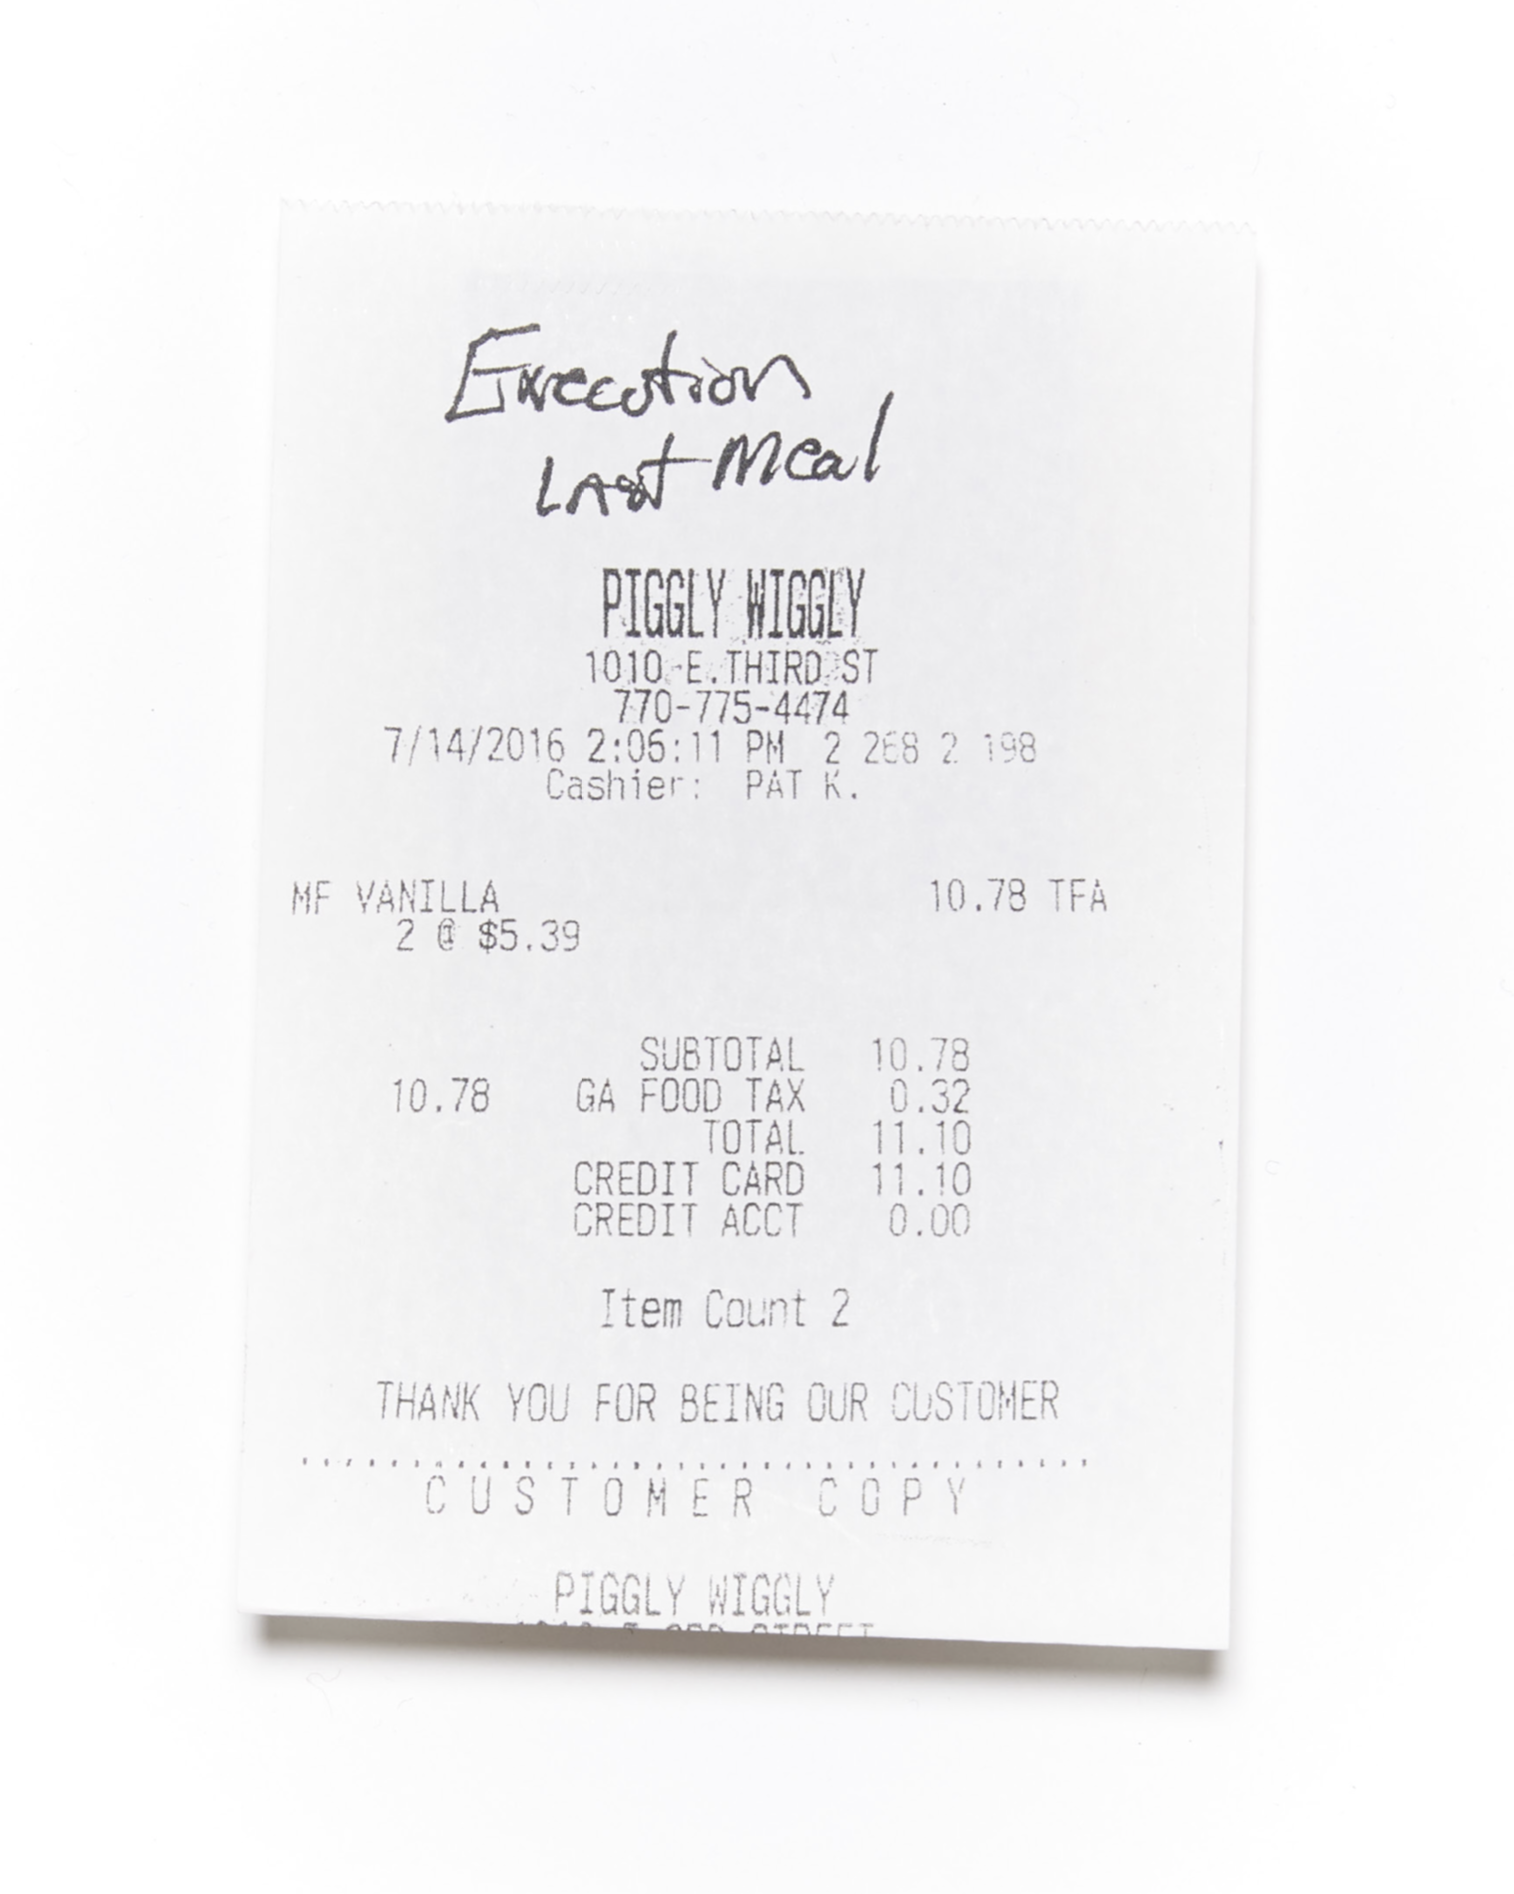 Last Meal Receipts